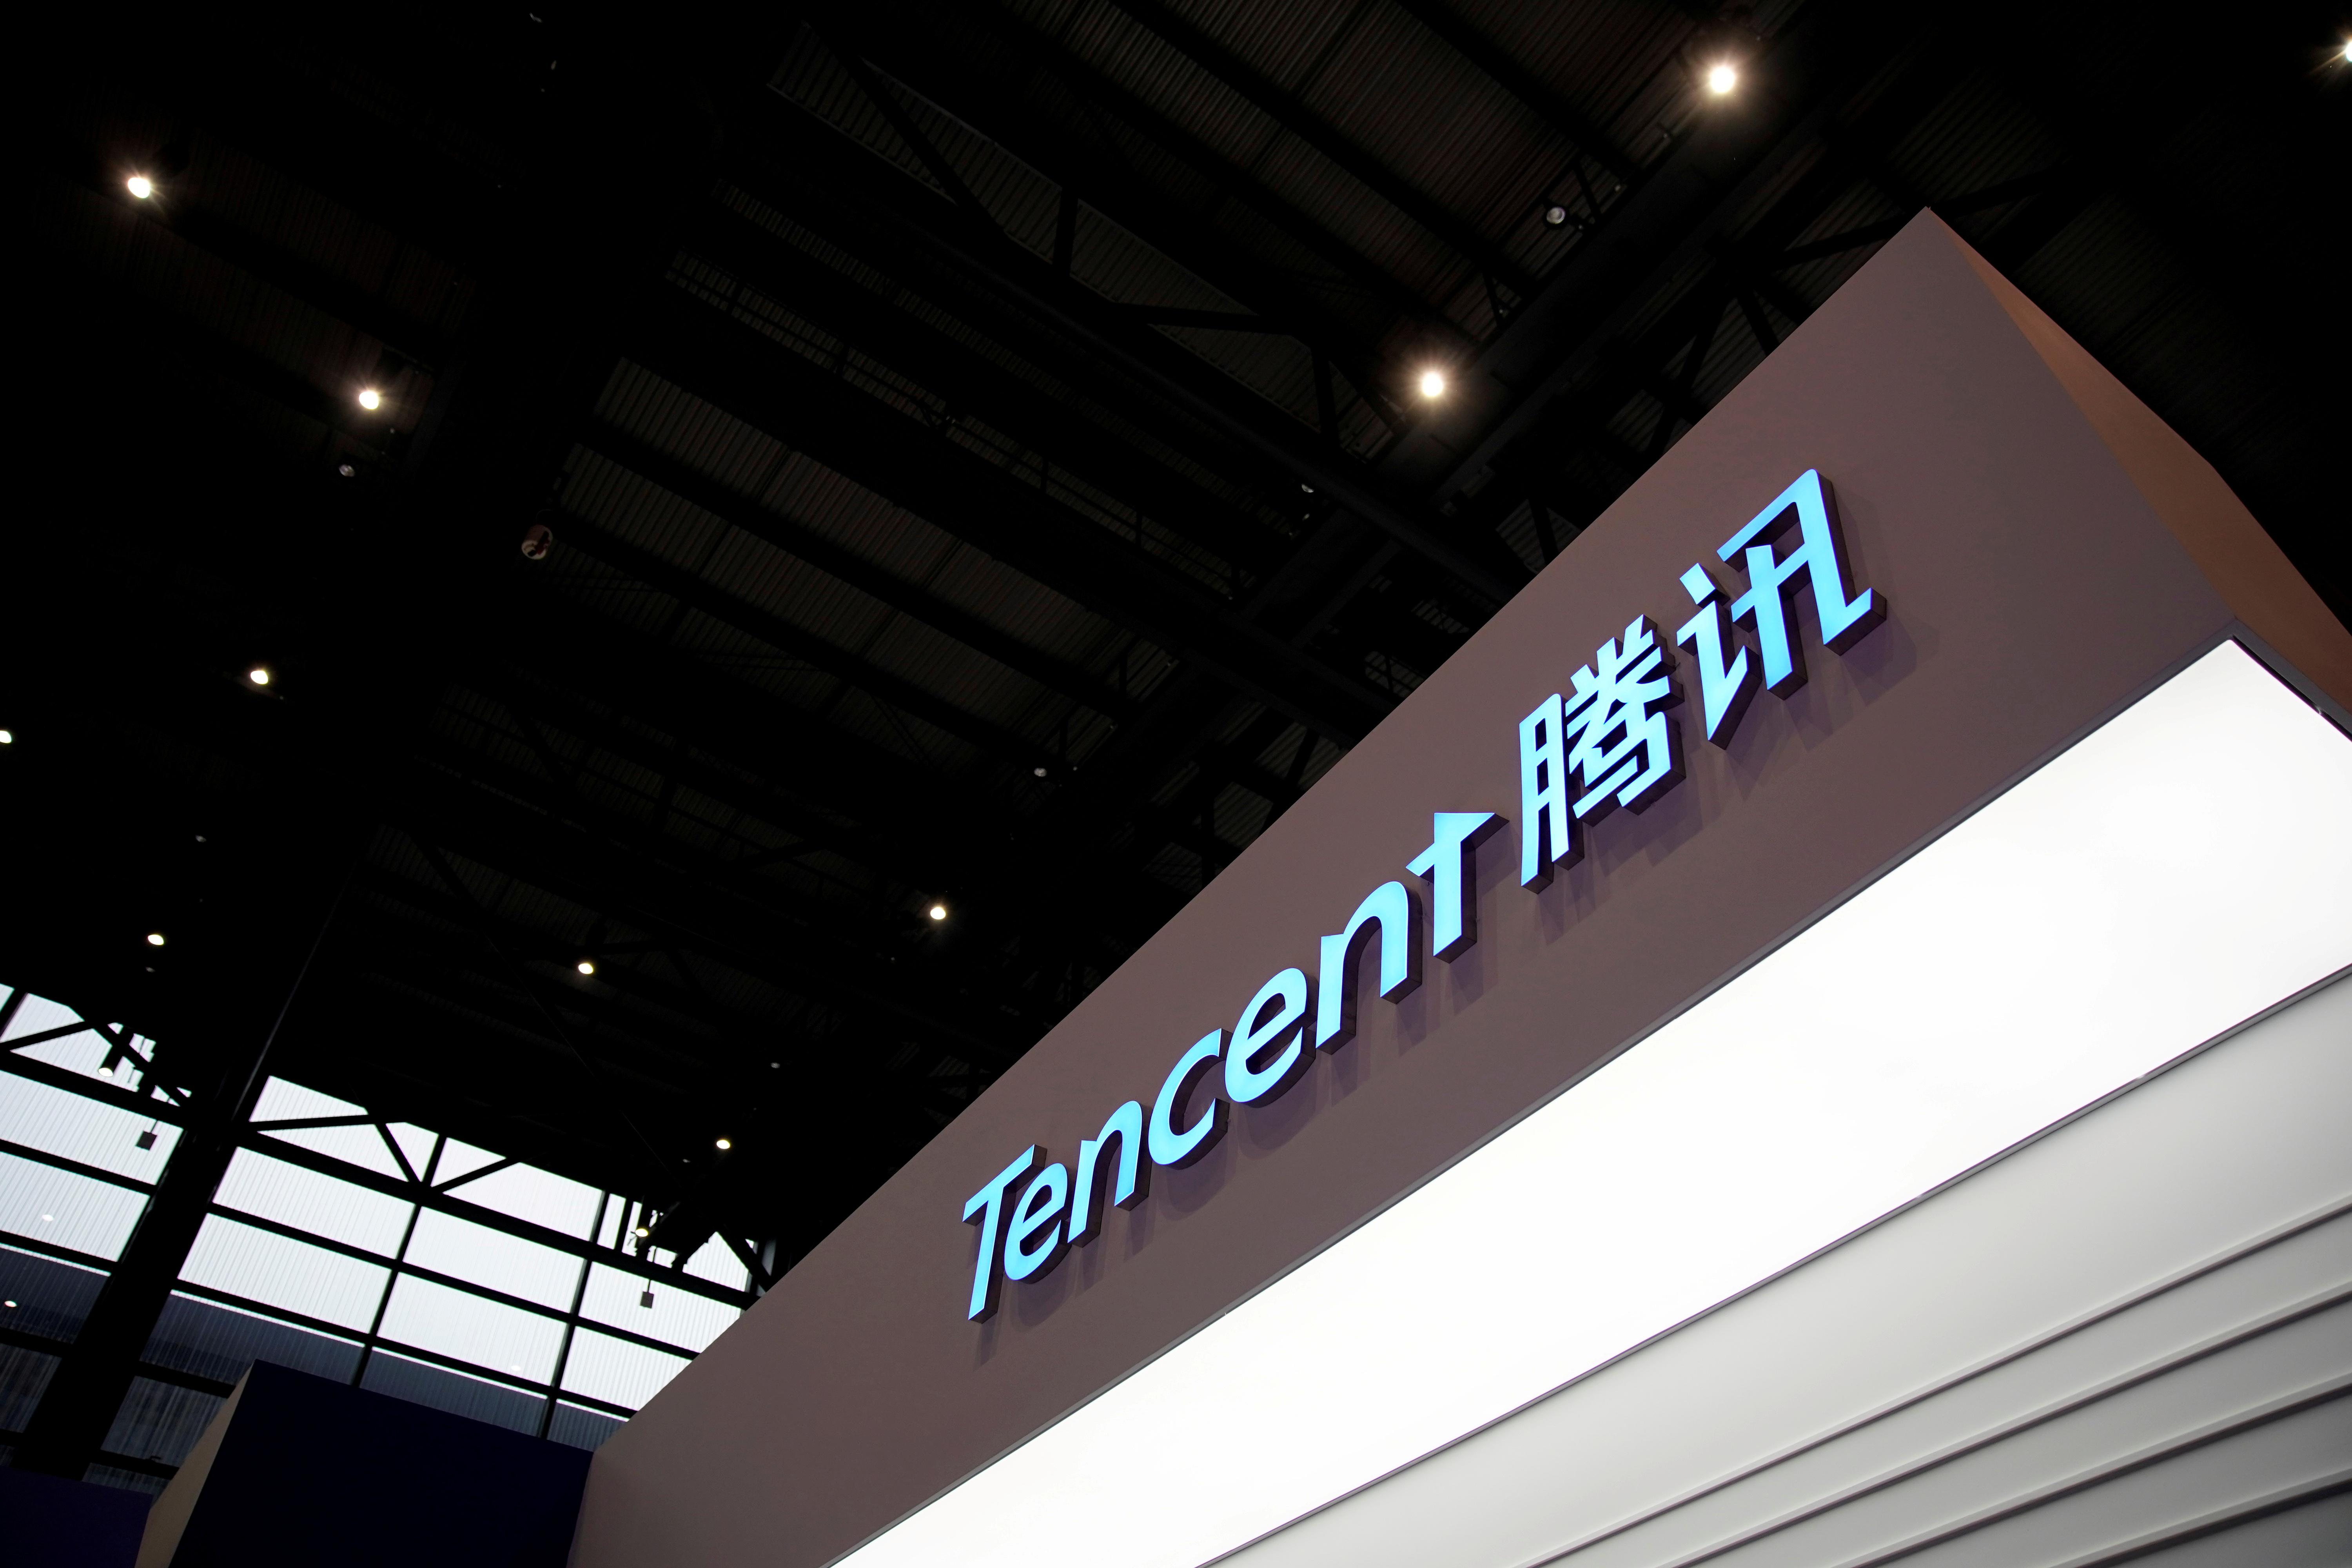 Cloud and clear: Tencent draws on gaming tech to lift B2B cloud...